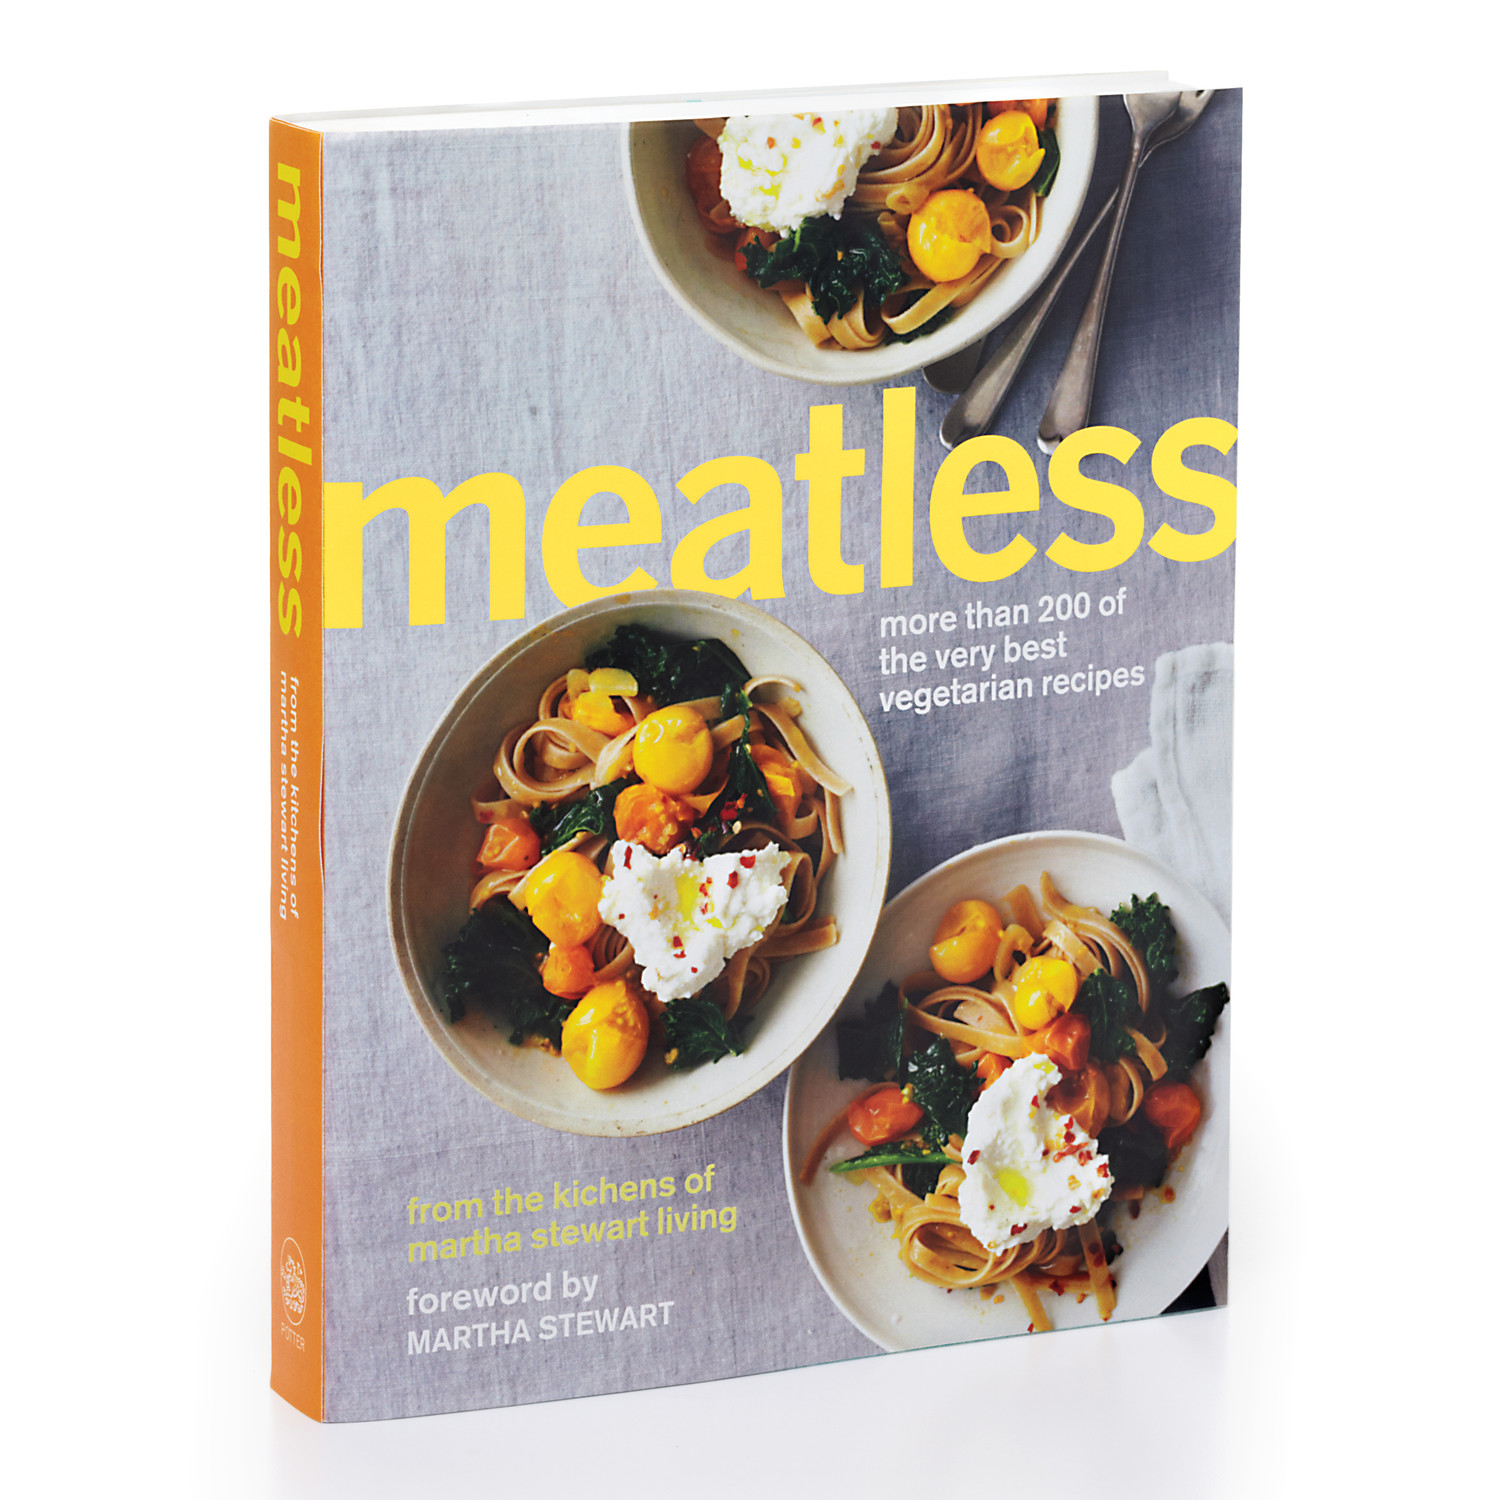 Sneak peek of meatless our newest cookbook martha stewart forumfinder Gallery